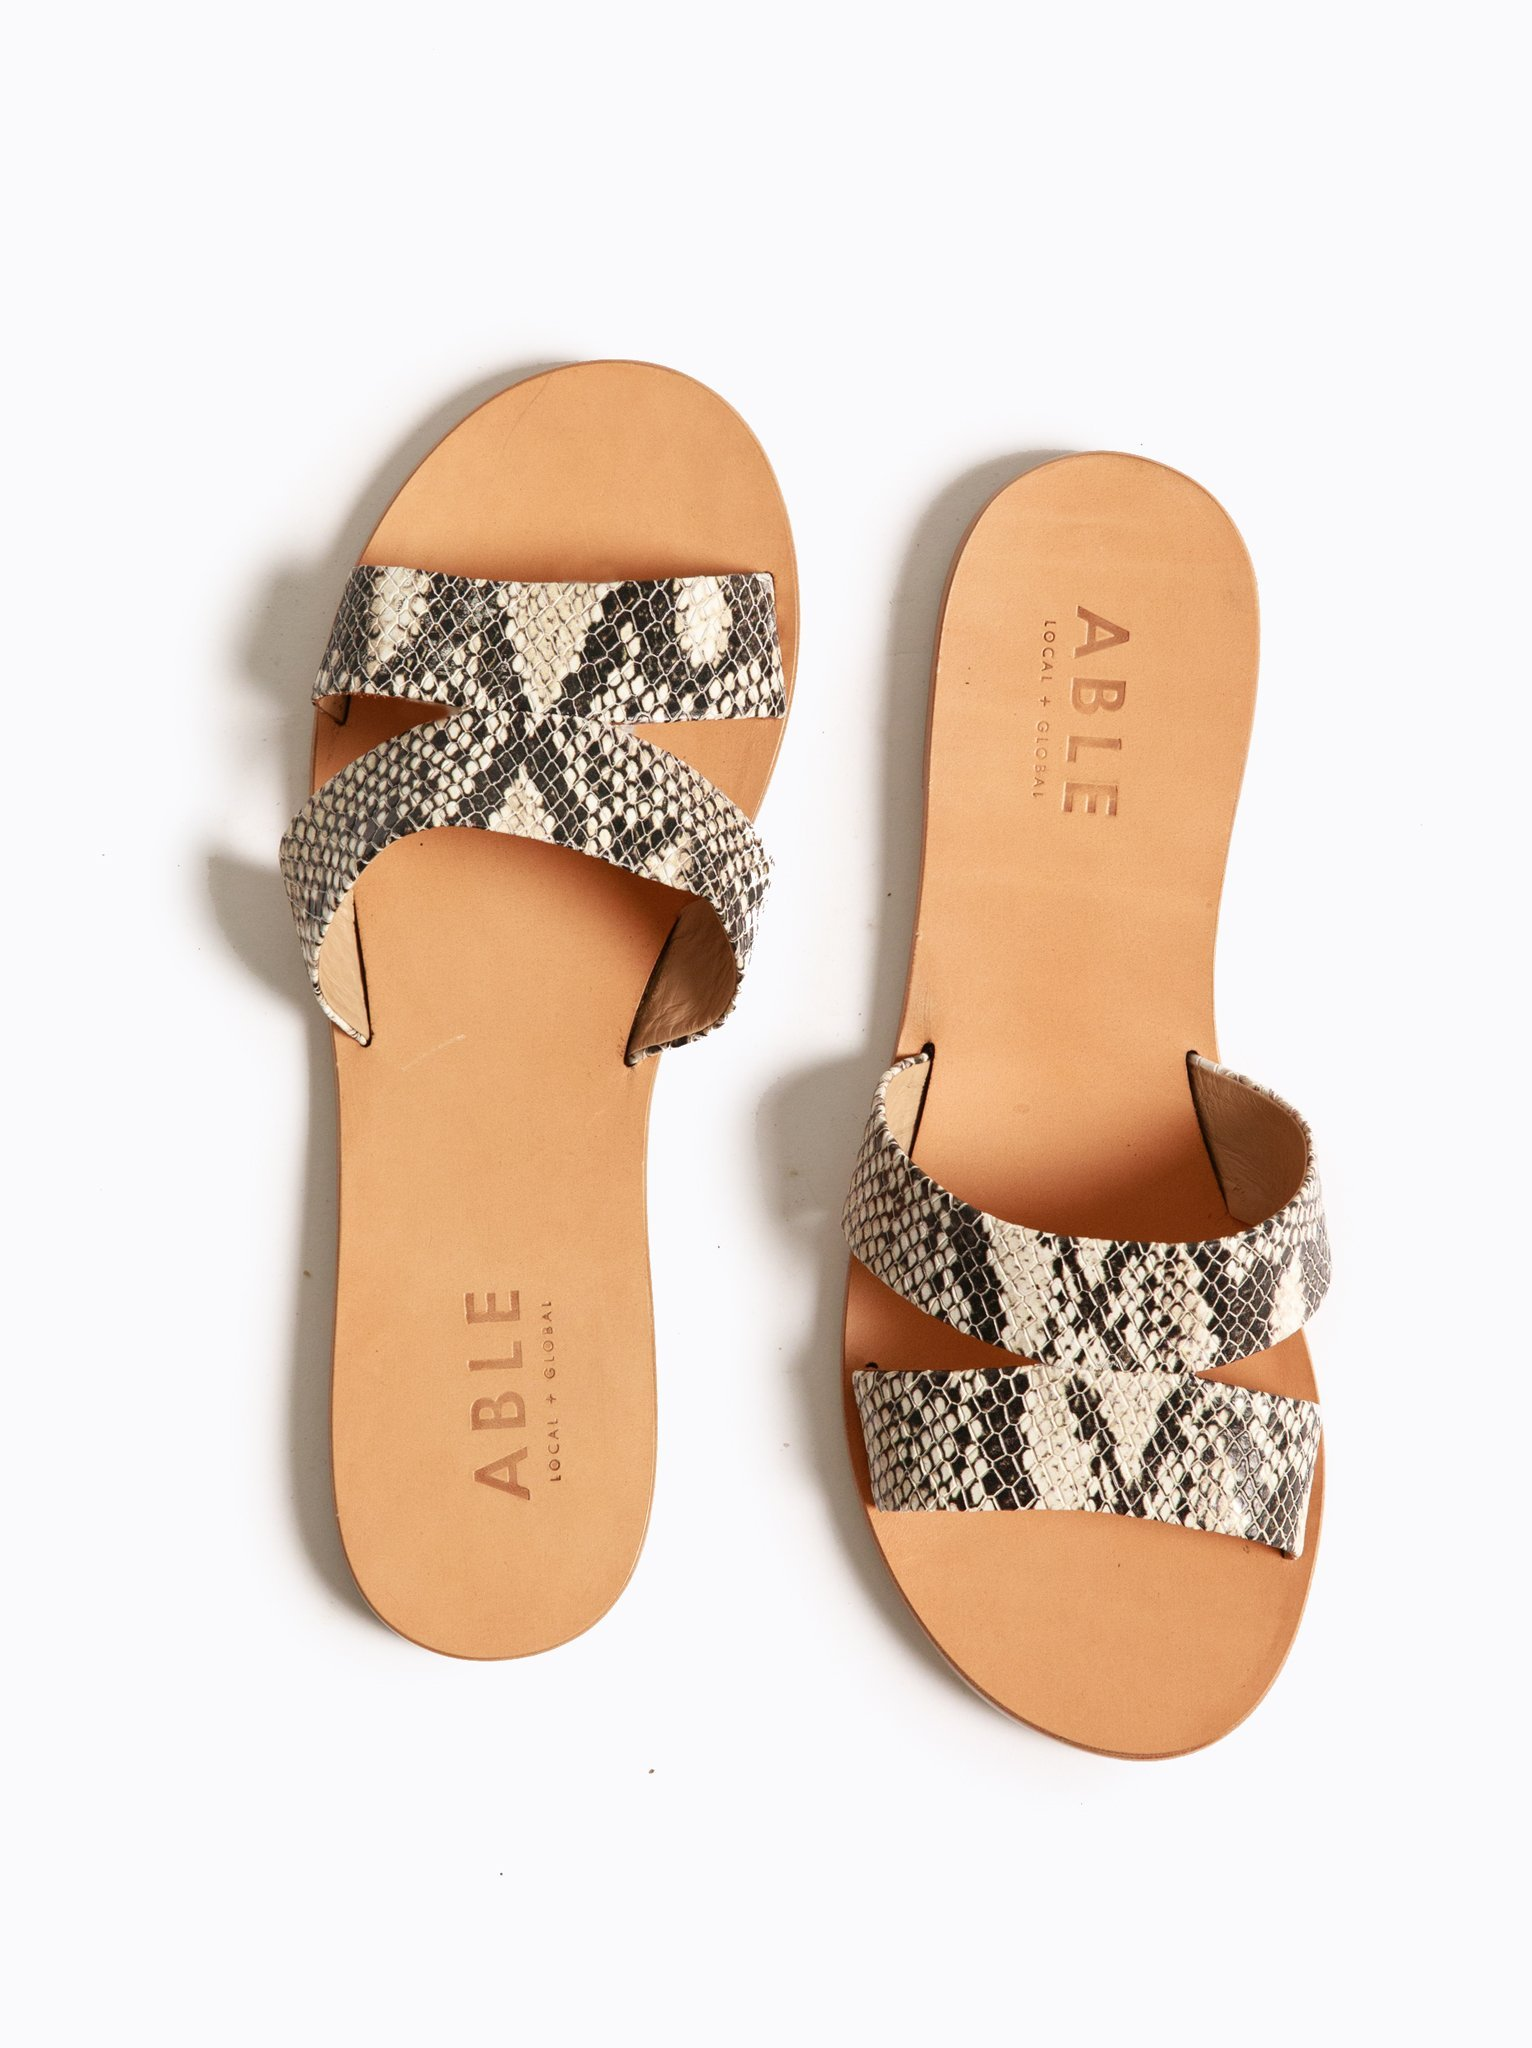 "Snakeprint Slide Sandal - ABLE | Ethically made by women in Nashville | $83 with discount code ""KEIRA15"" at checkout"